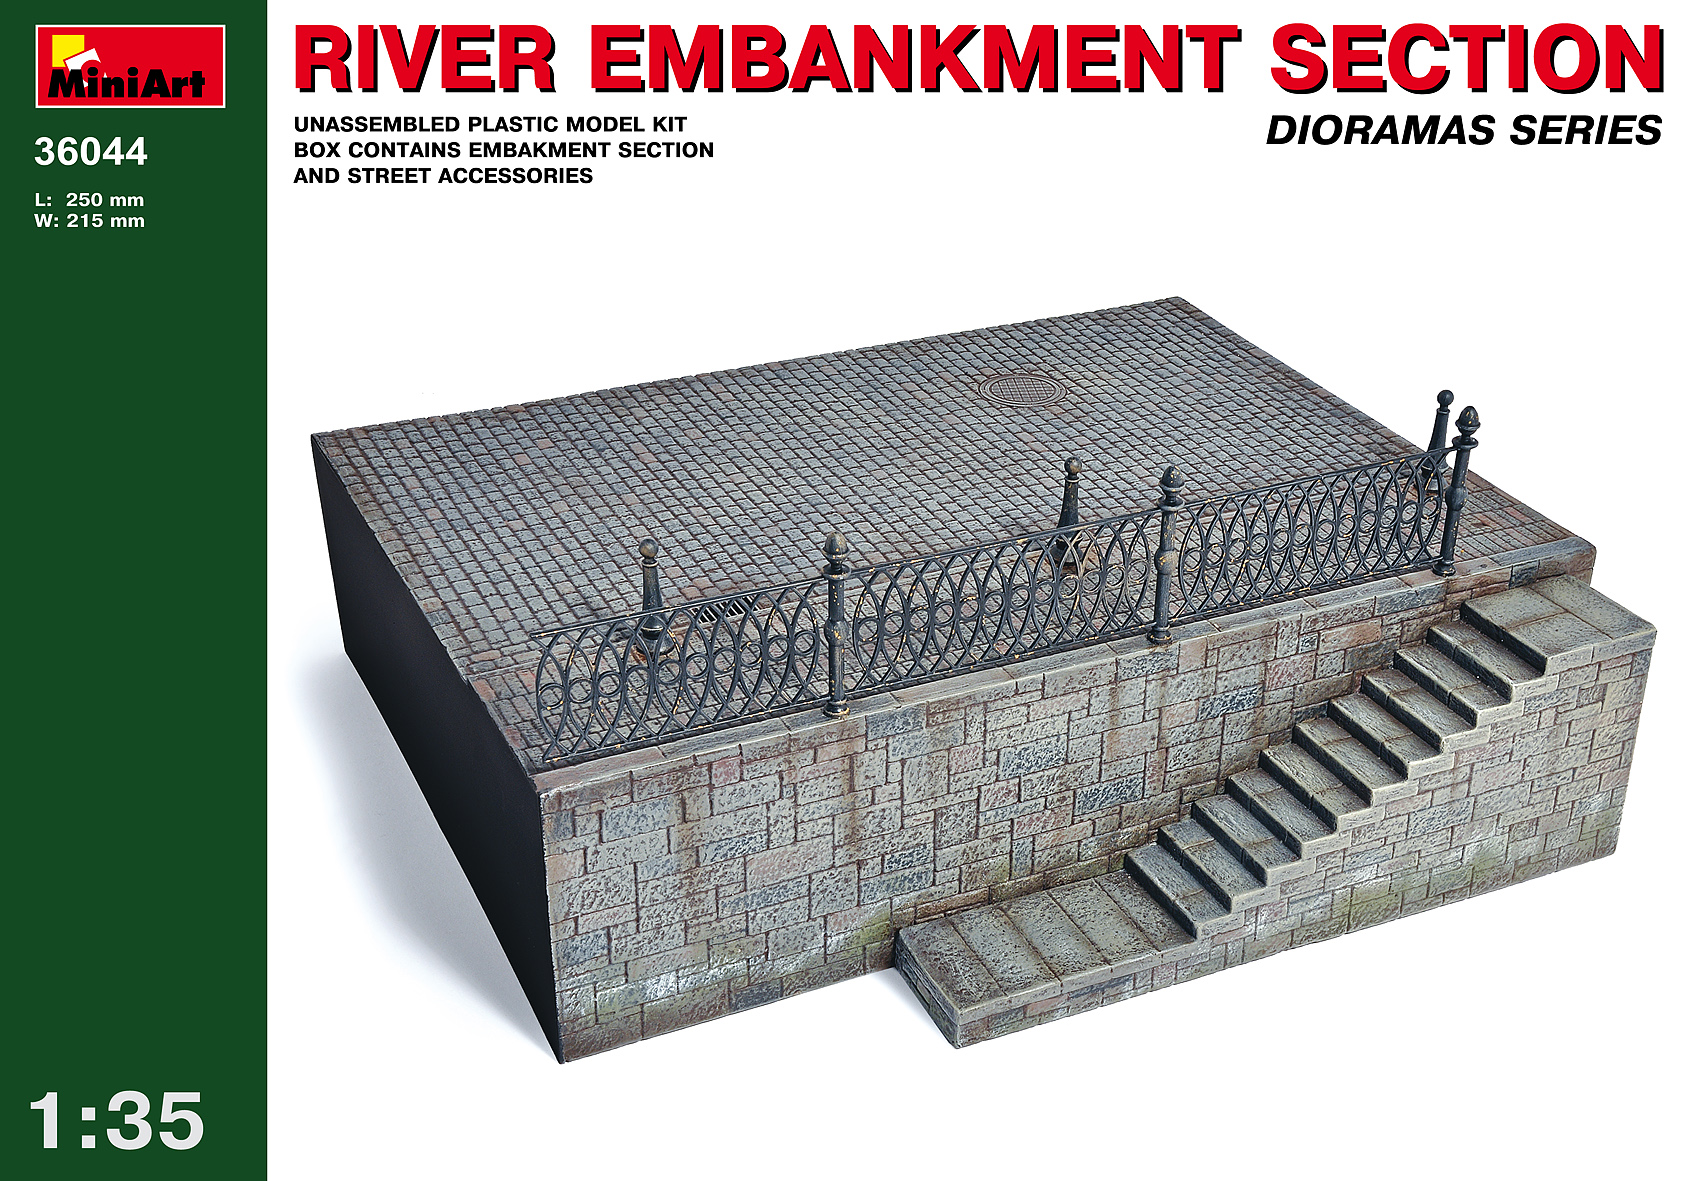 36044 RIVER EMBANKMENT SECTION